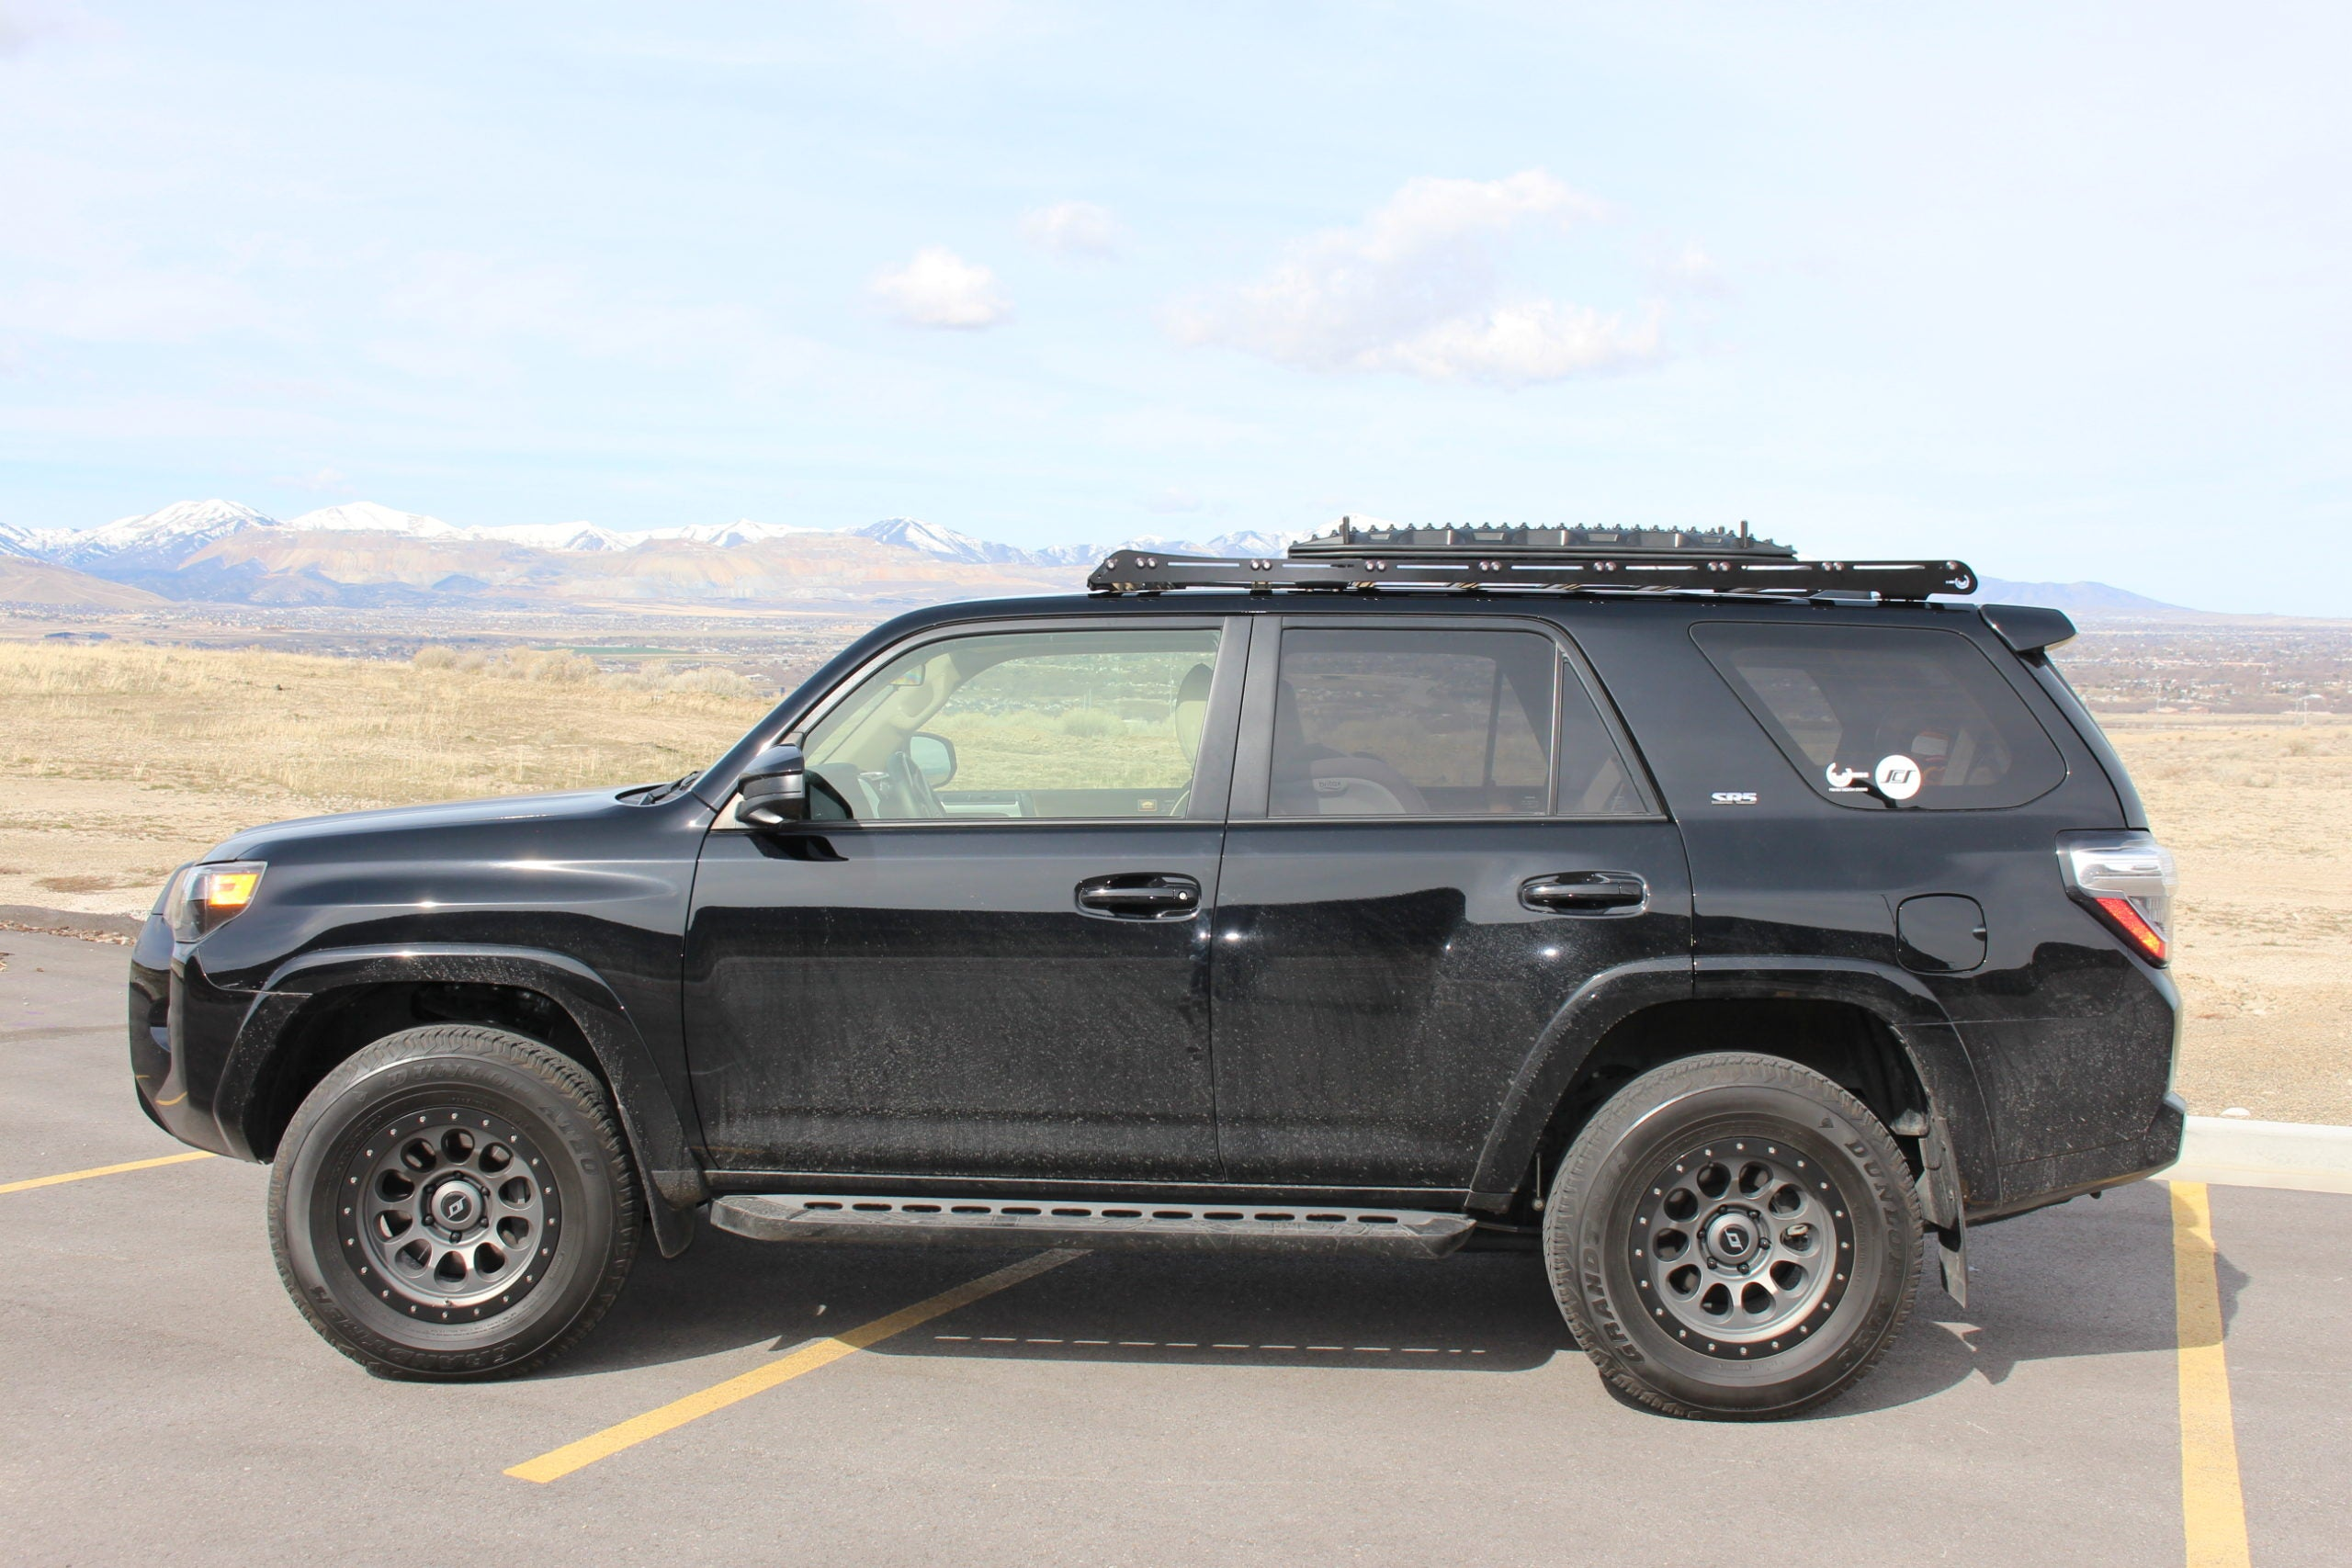 Prinsu Roof Rack 7/8 Length - 4Runner 5th Gen 2010-2020 - 4x4 Runners